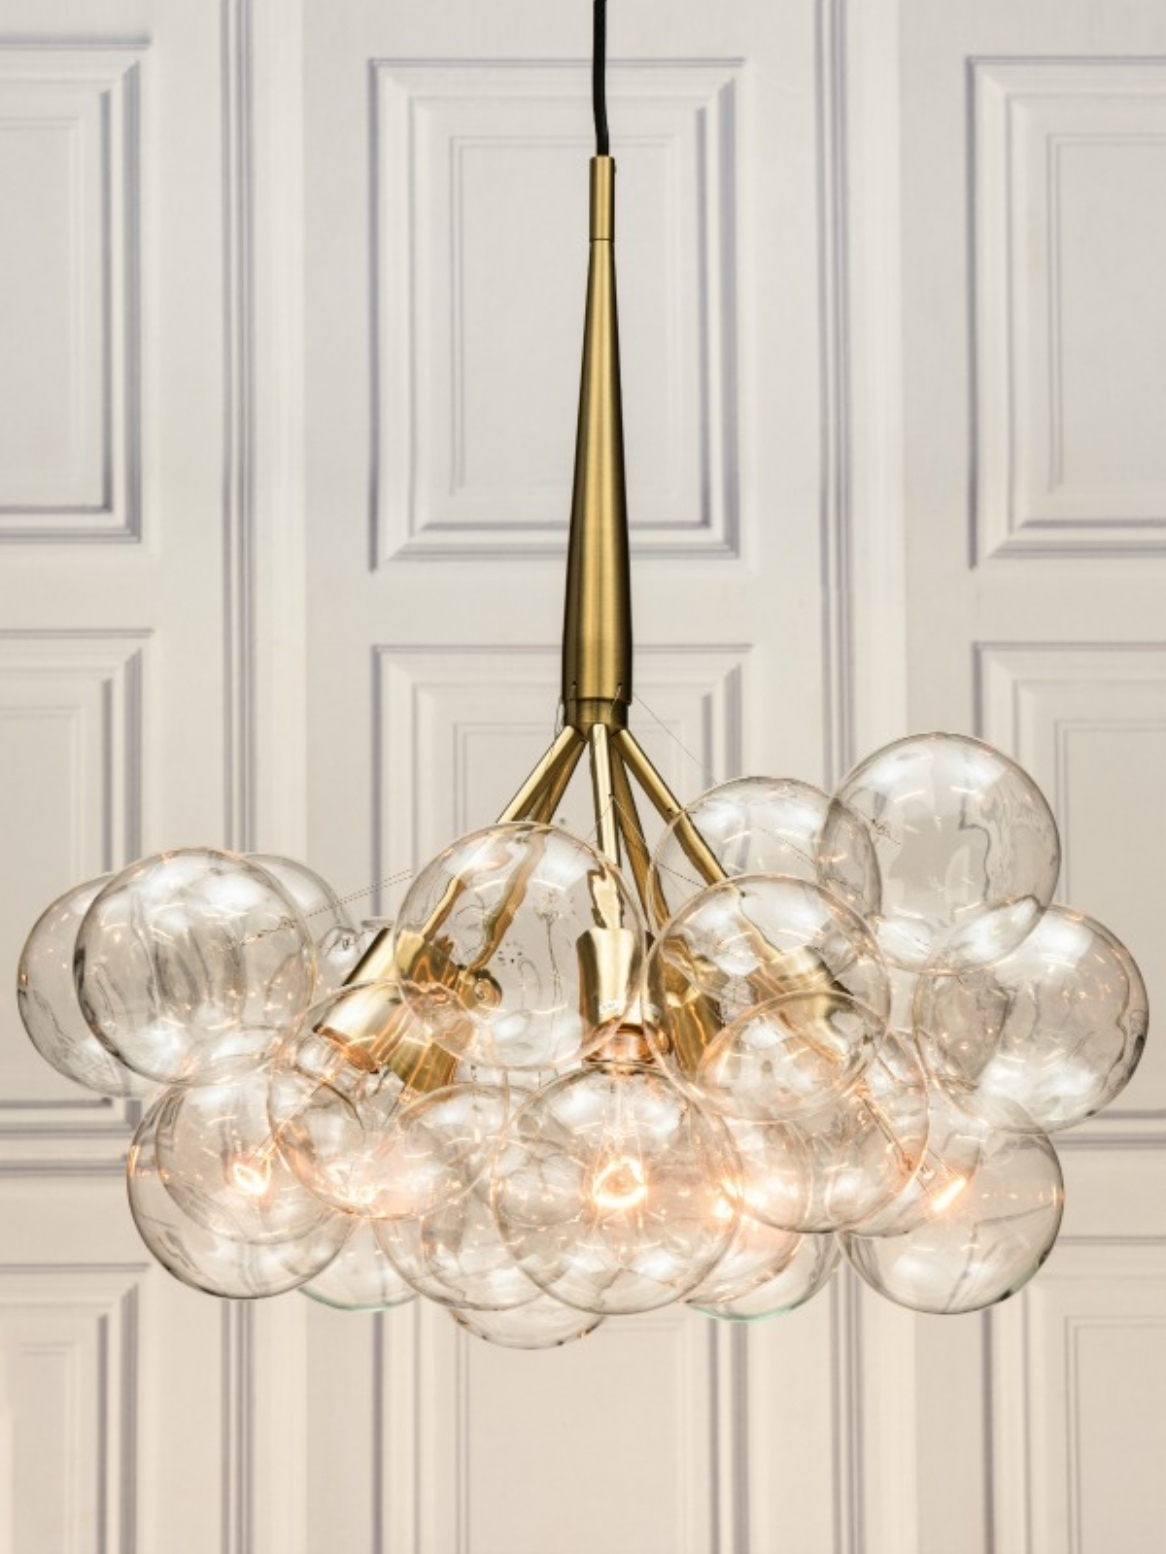 Newest Retro Chandeliers With Regard To Chandeliers Design : Awesome Large Globe Chandelier Retro Glass (View 18 of 20)